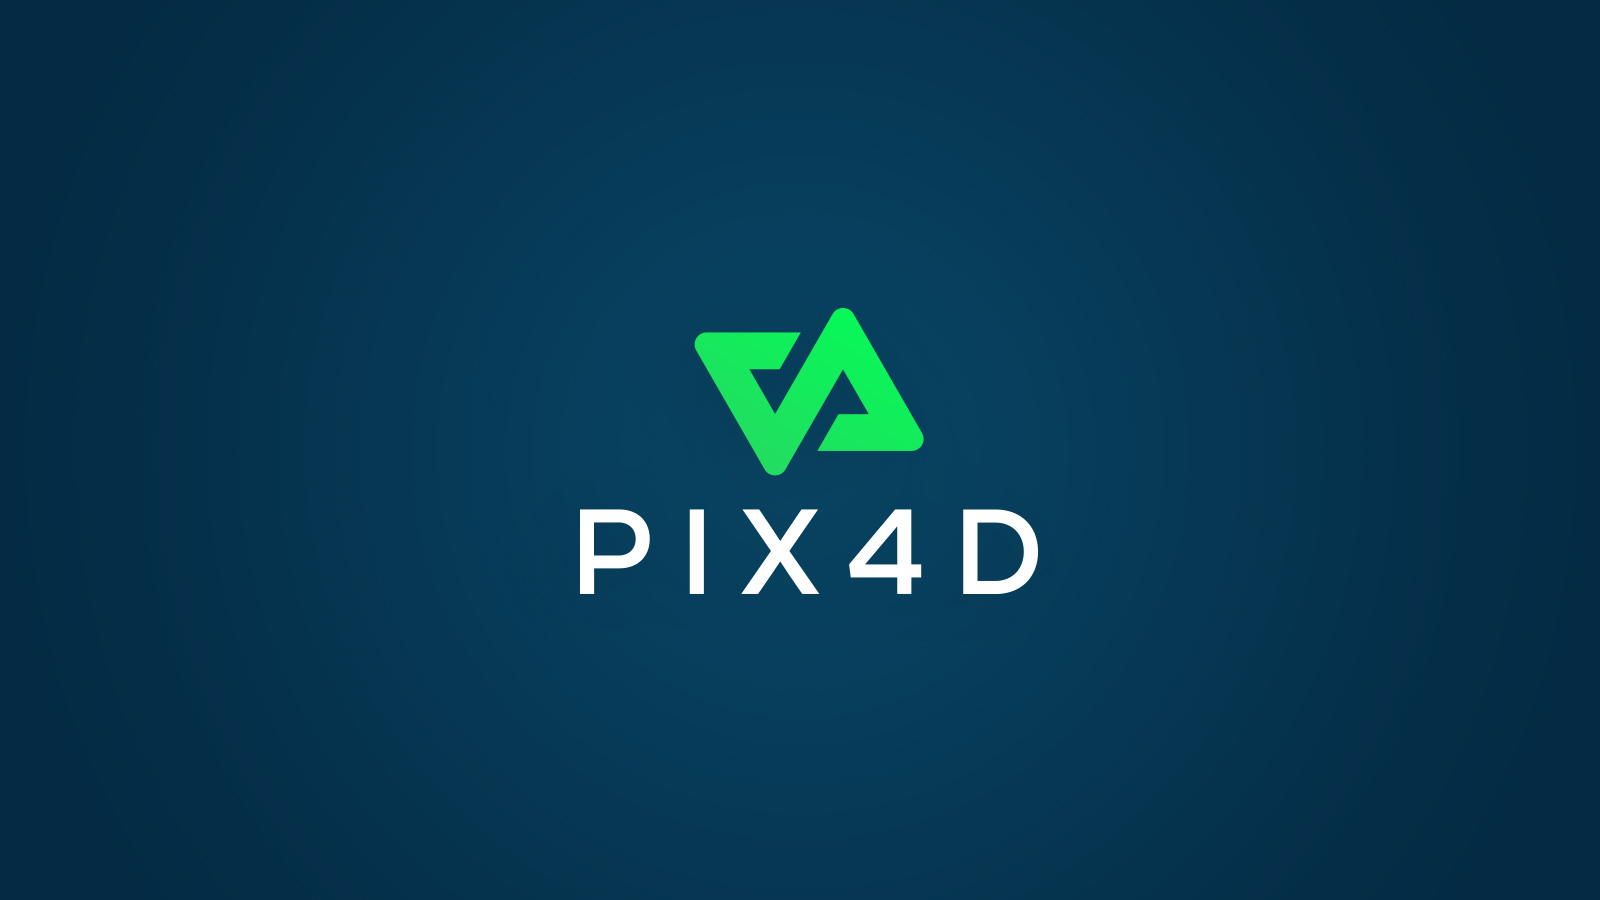 Pix4D new logo in green with a blue background